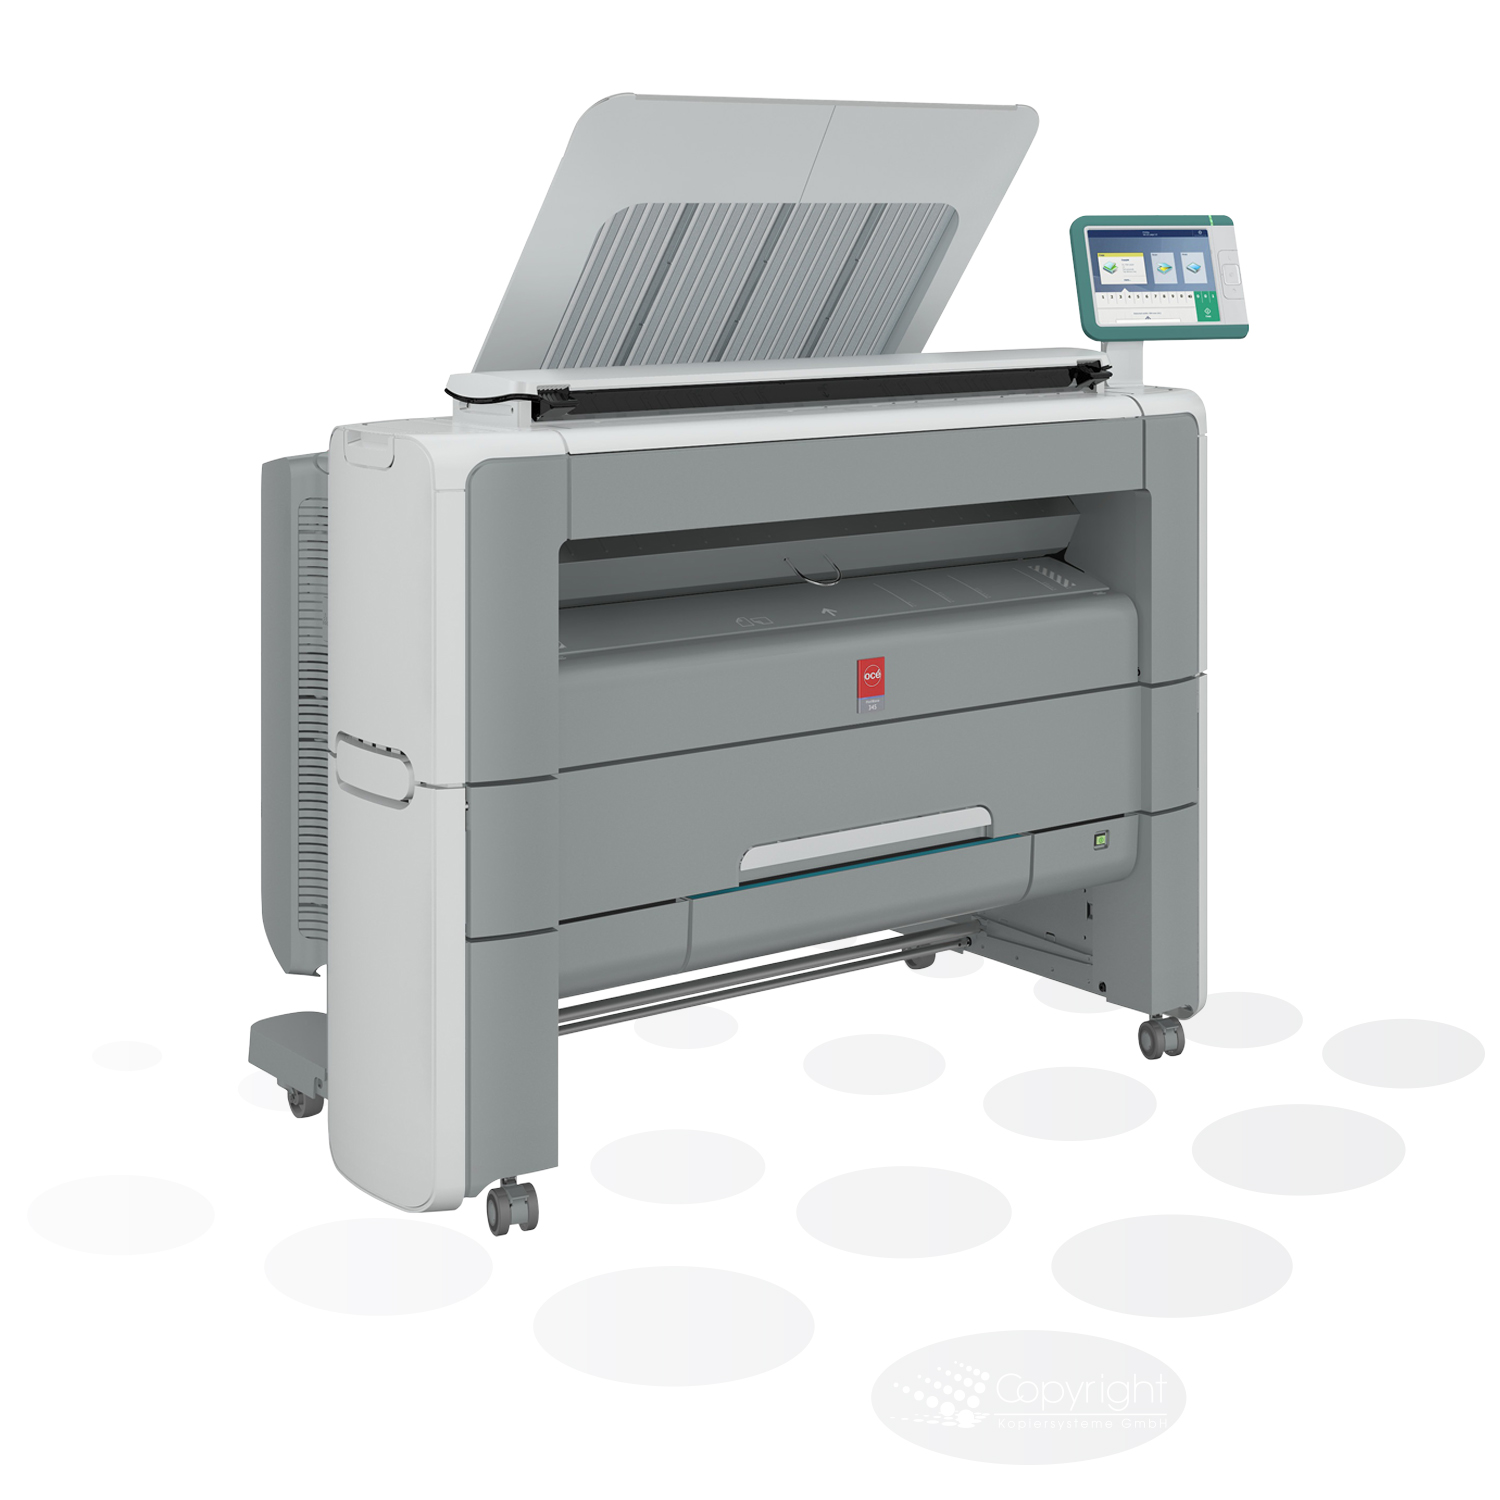 Plotwave 345 MFP